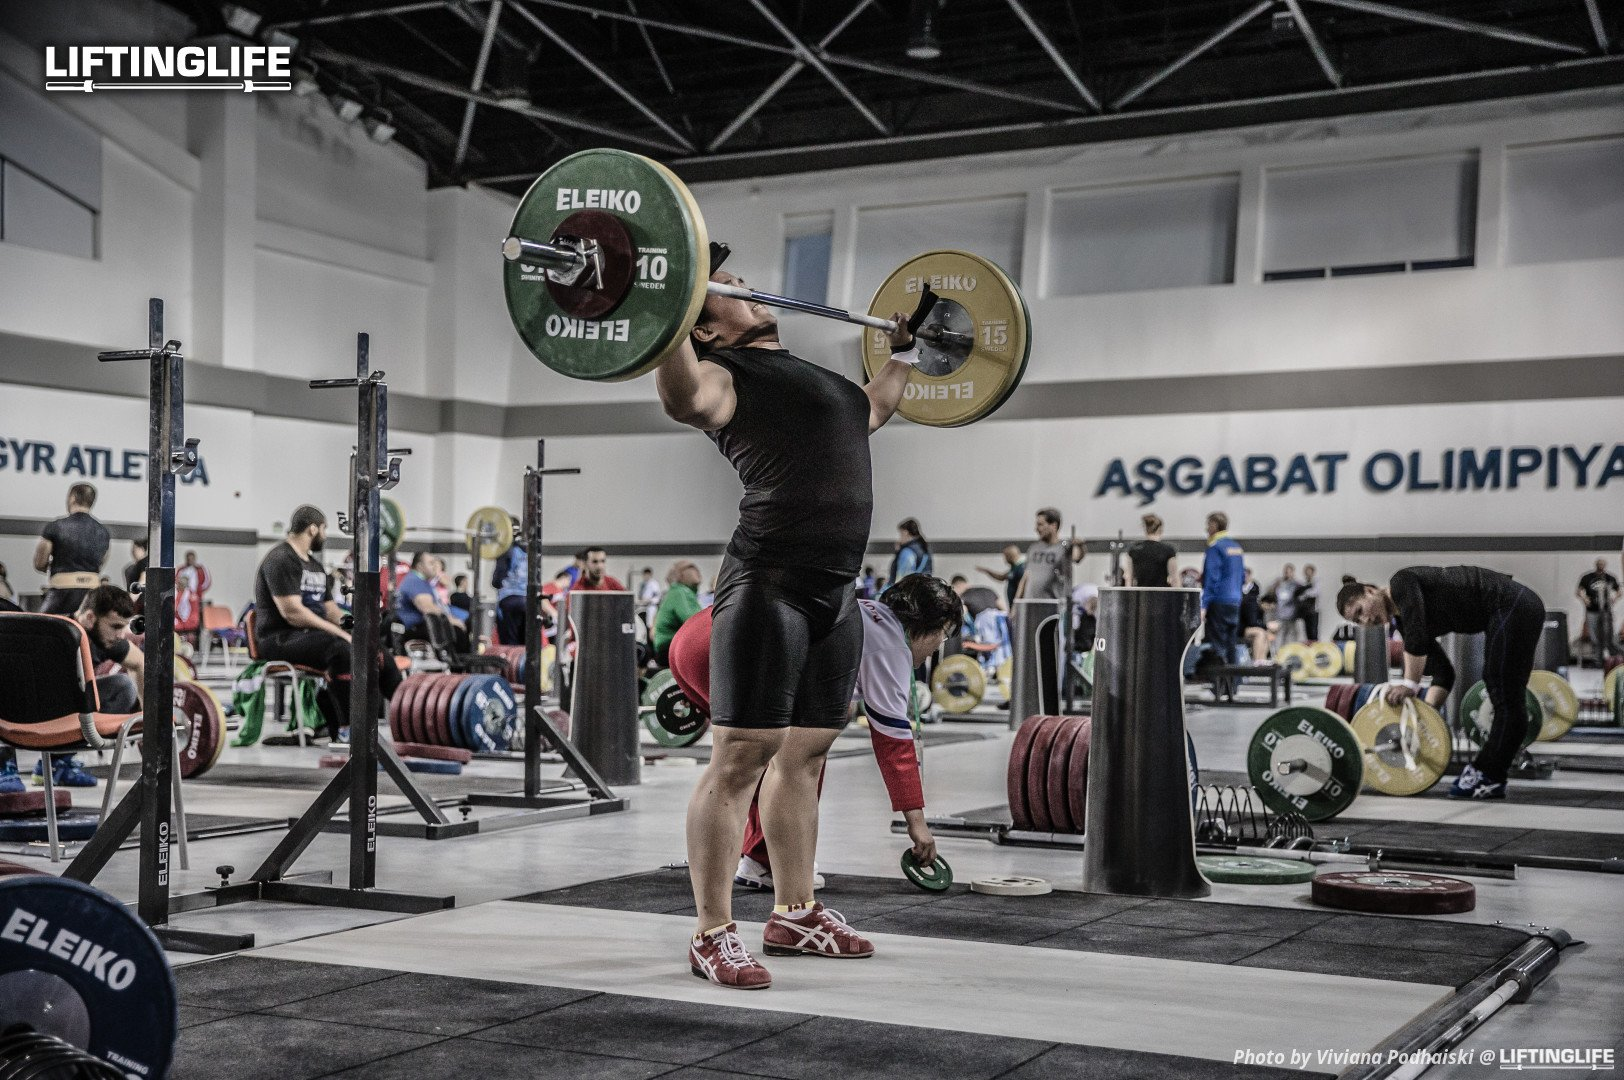 Weightlifter muscle snatches in the training hall at the 2018 World Championships